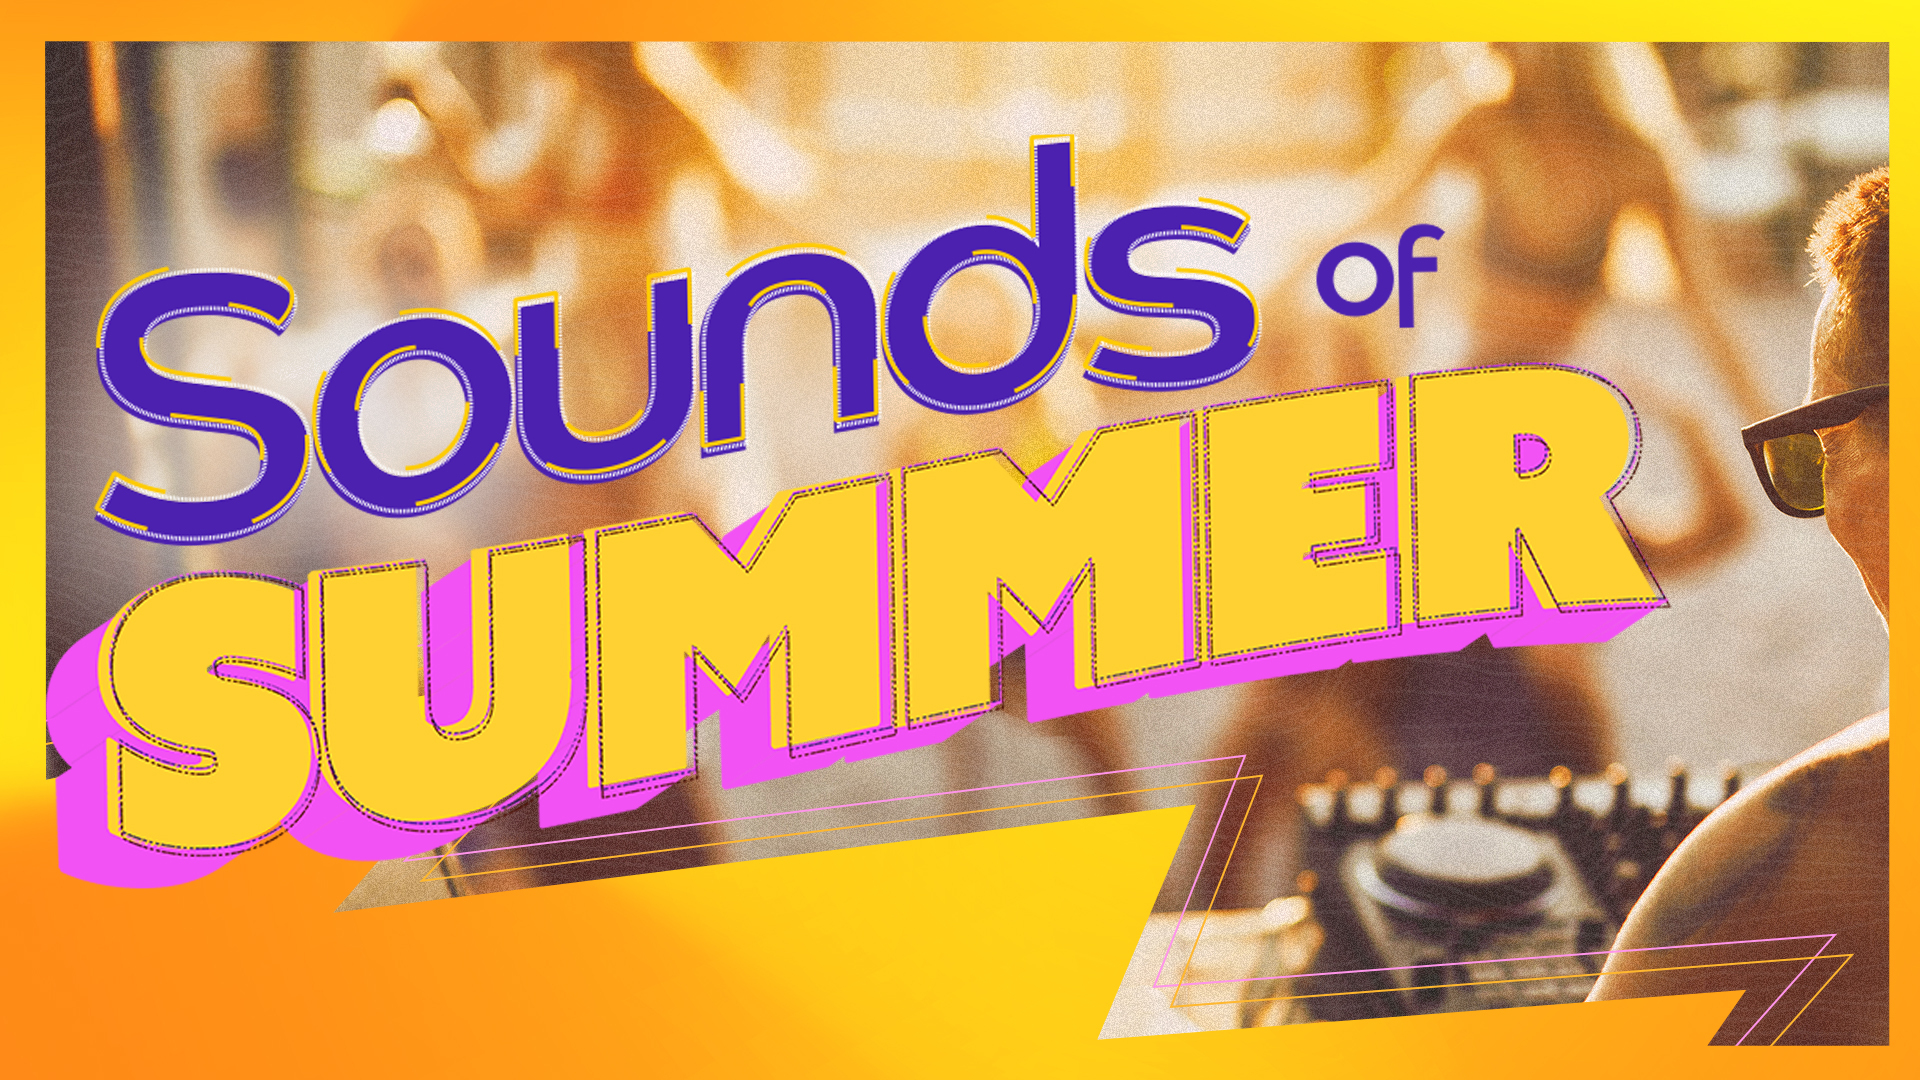 Take a sonic trip to summer hot spots across the US all season long